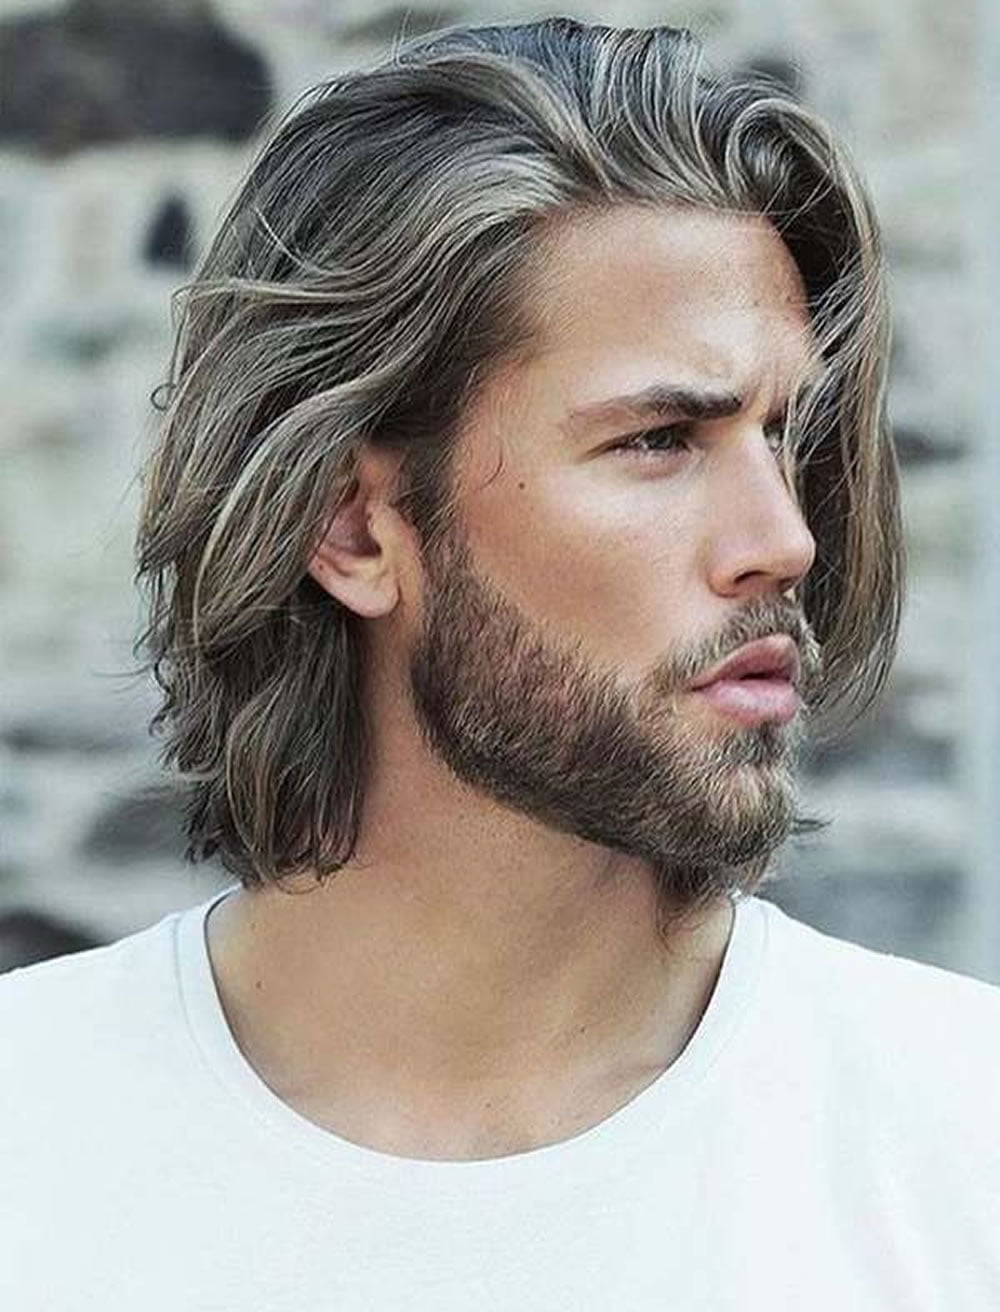 top 20 hairstyles for men 2018 best haircut ideas for guys. Black Bedroom Furniture Sets. Home Design Ideas